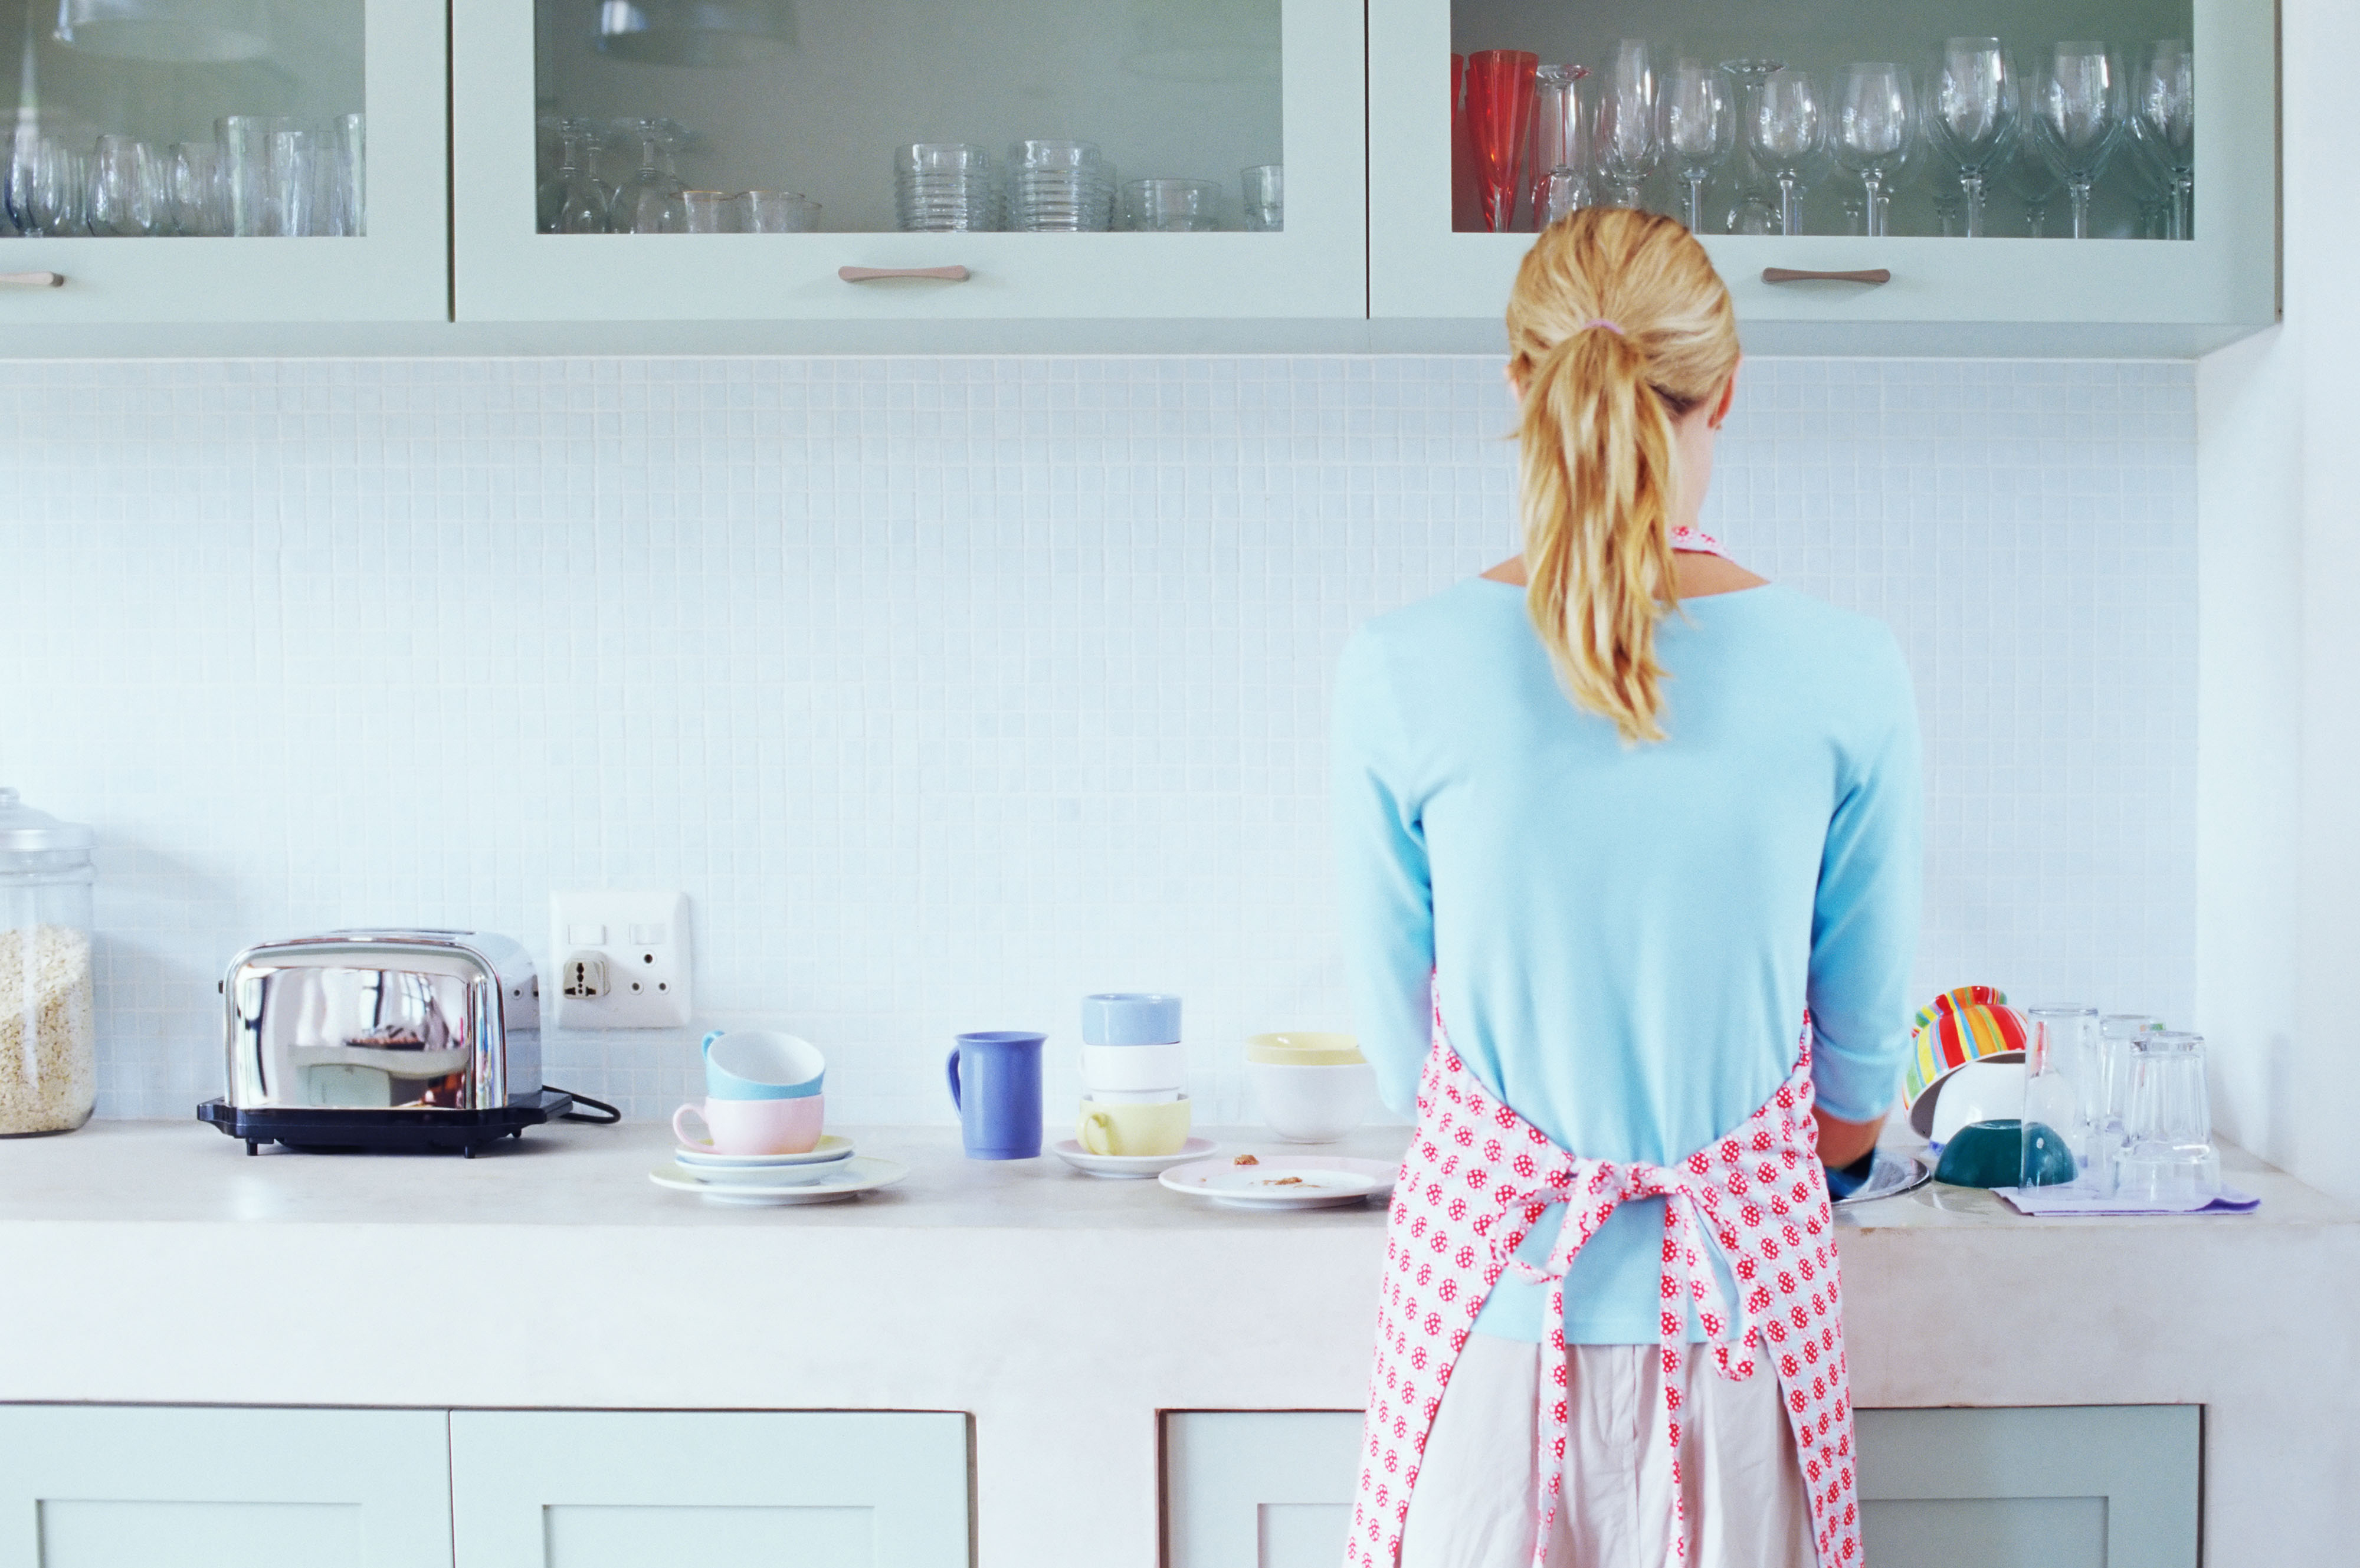 Wives vs. Husbands: Who Does More Chores?